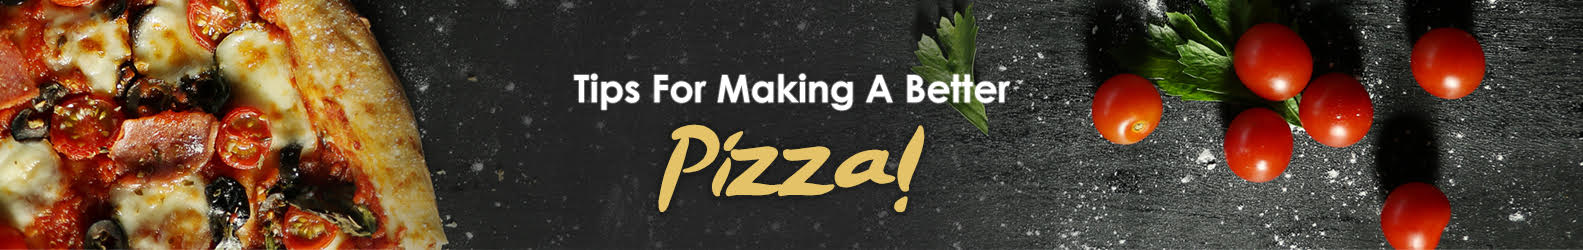 Tips for Making Pizza